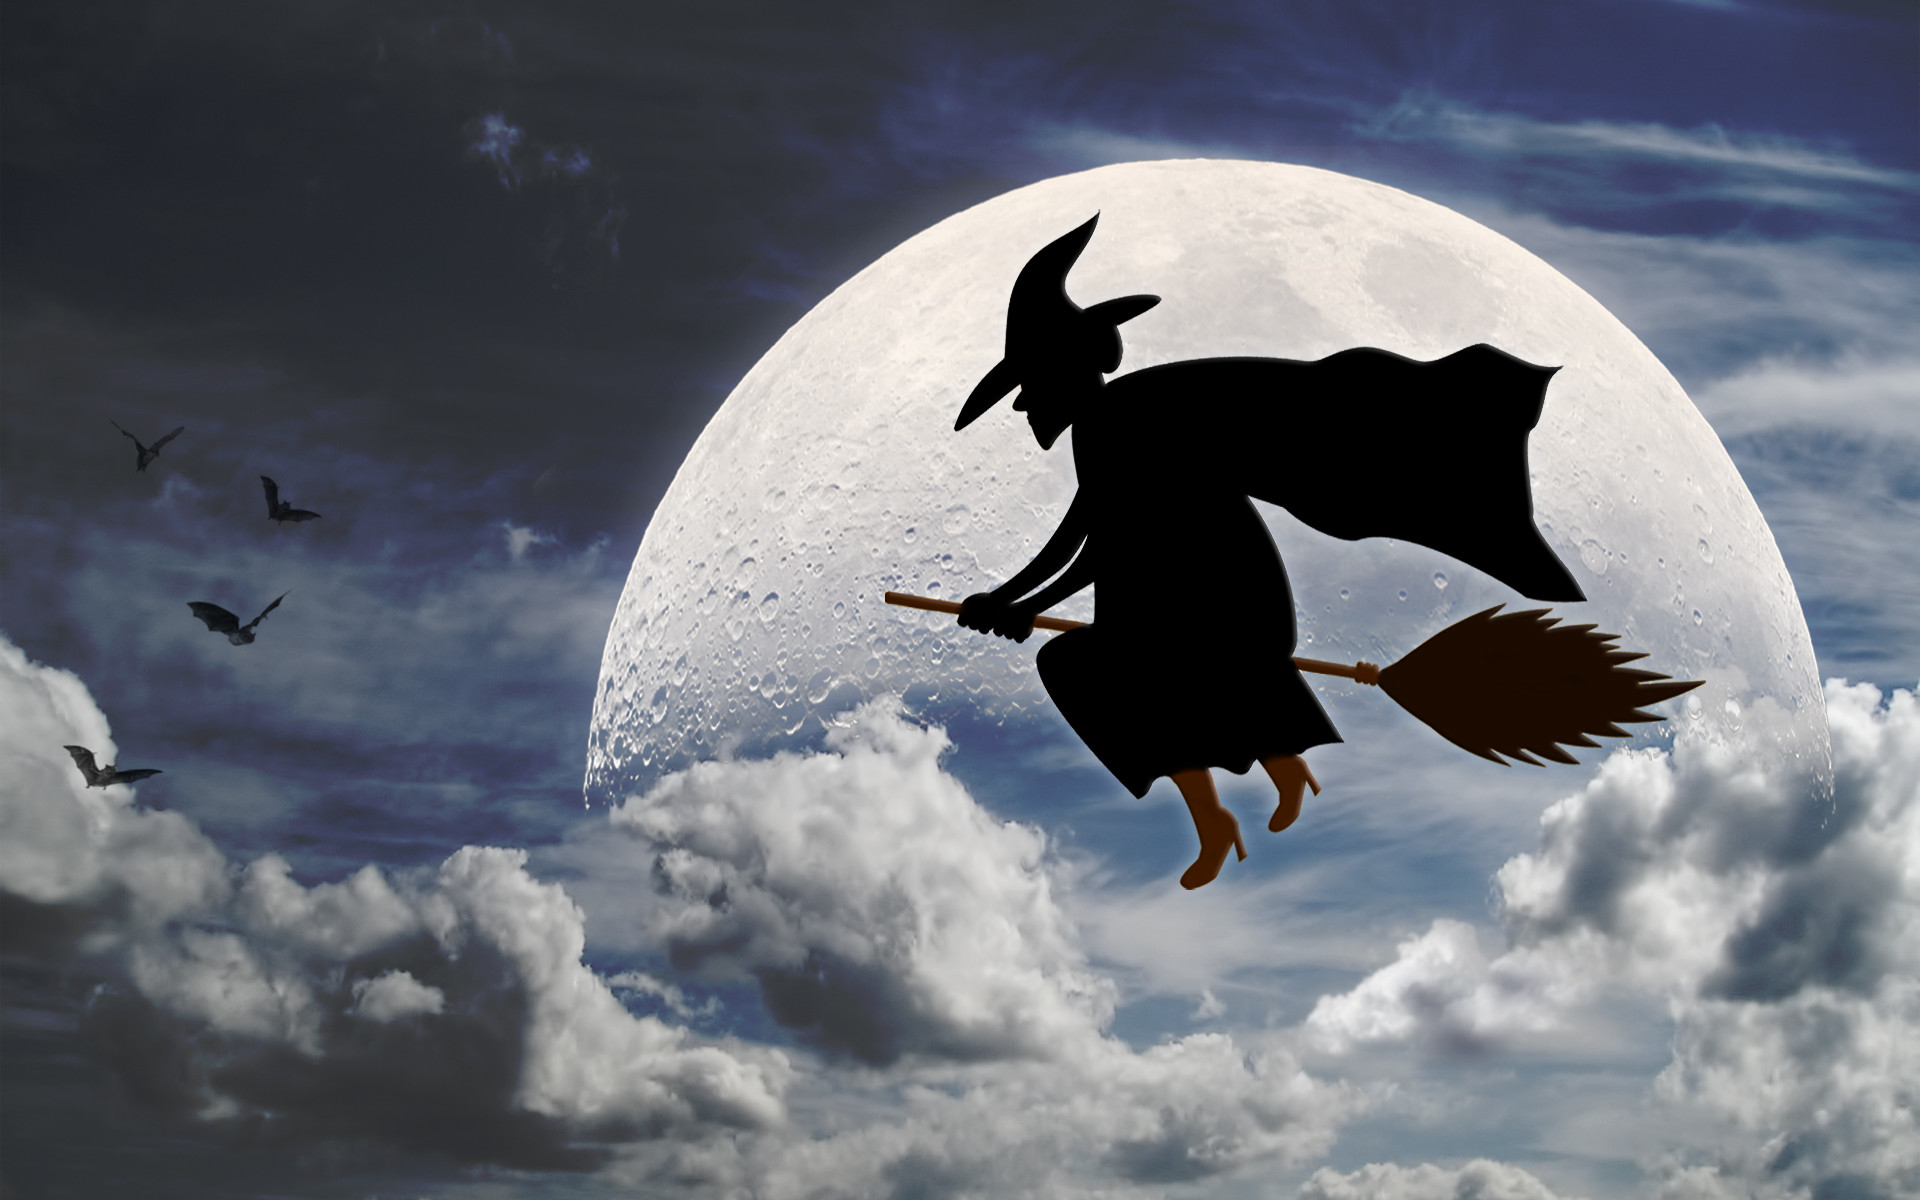 Witch HD images | Witches wallpapers